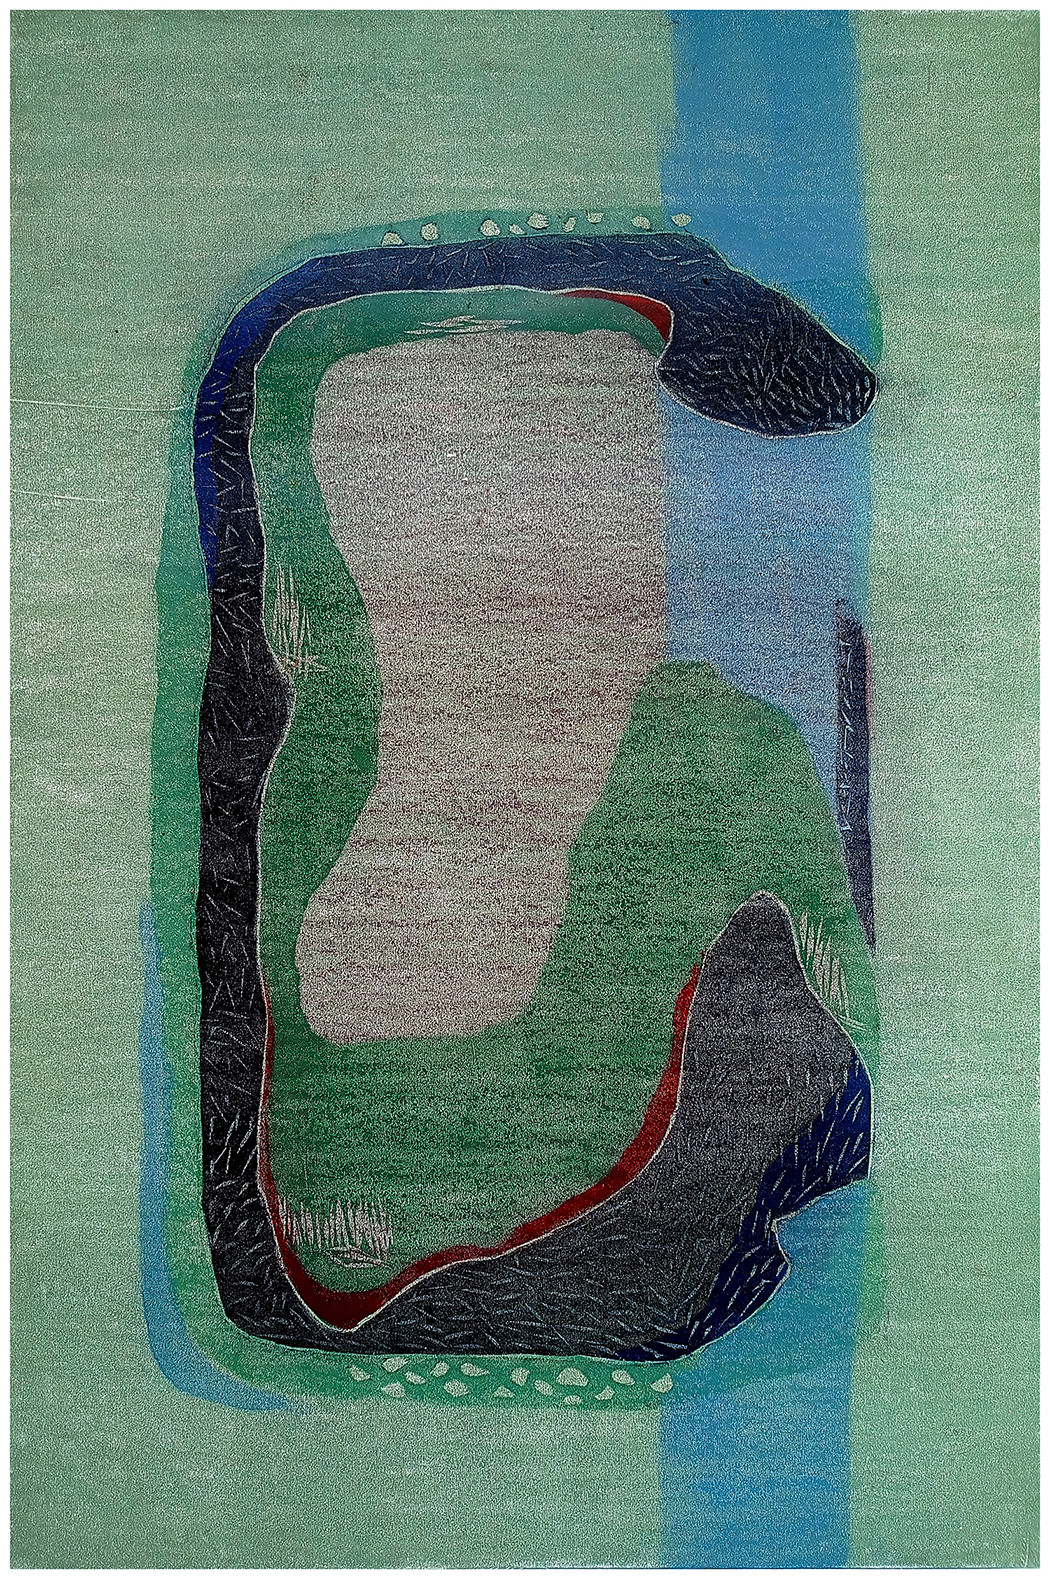 nature by ashwini patil, Abstract Printmaking, Ink on Paper, Blue Smoke color